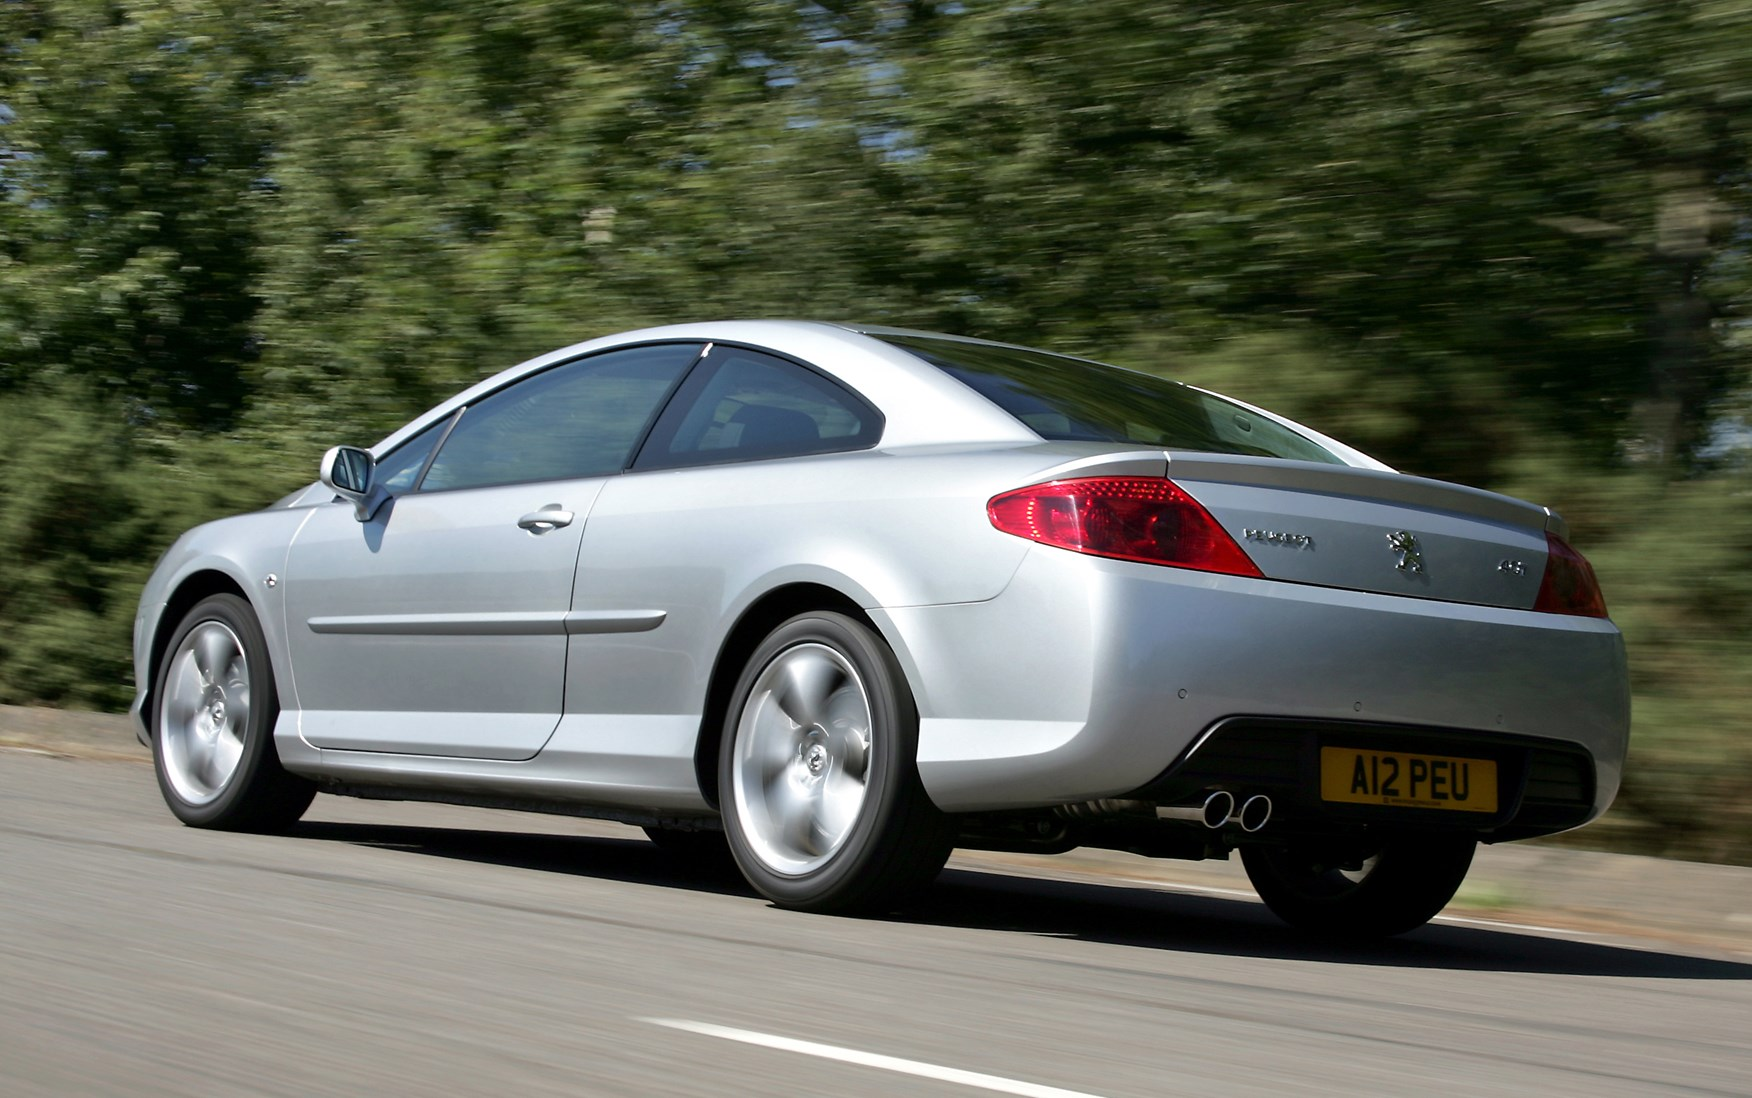 peugeot 407 coup 2006 2010 features equipment and accessories parkers. Black Bedroom Furniture Sets. Home Design Ideas